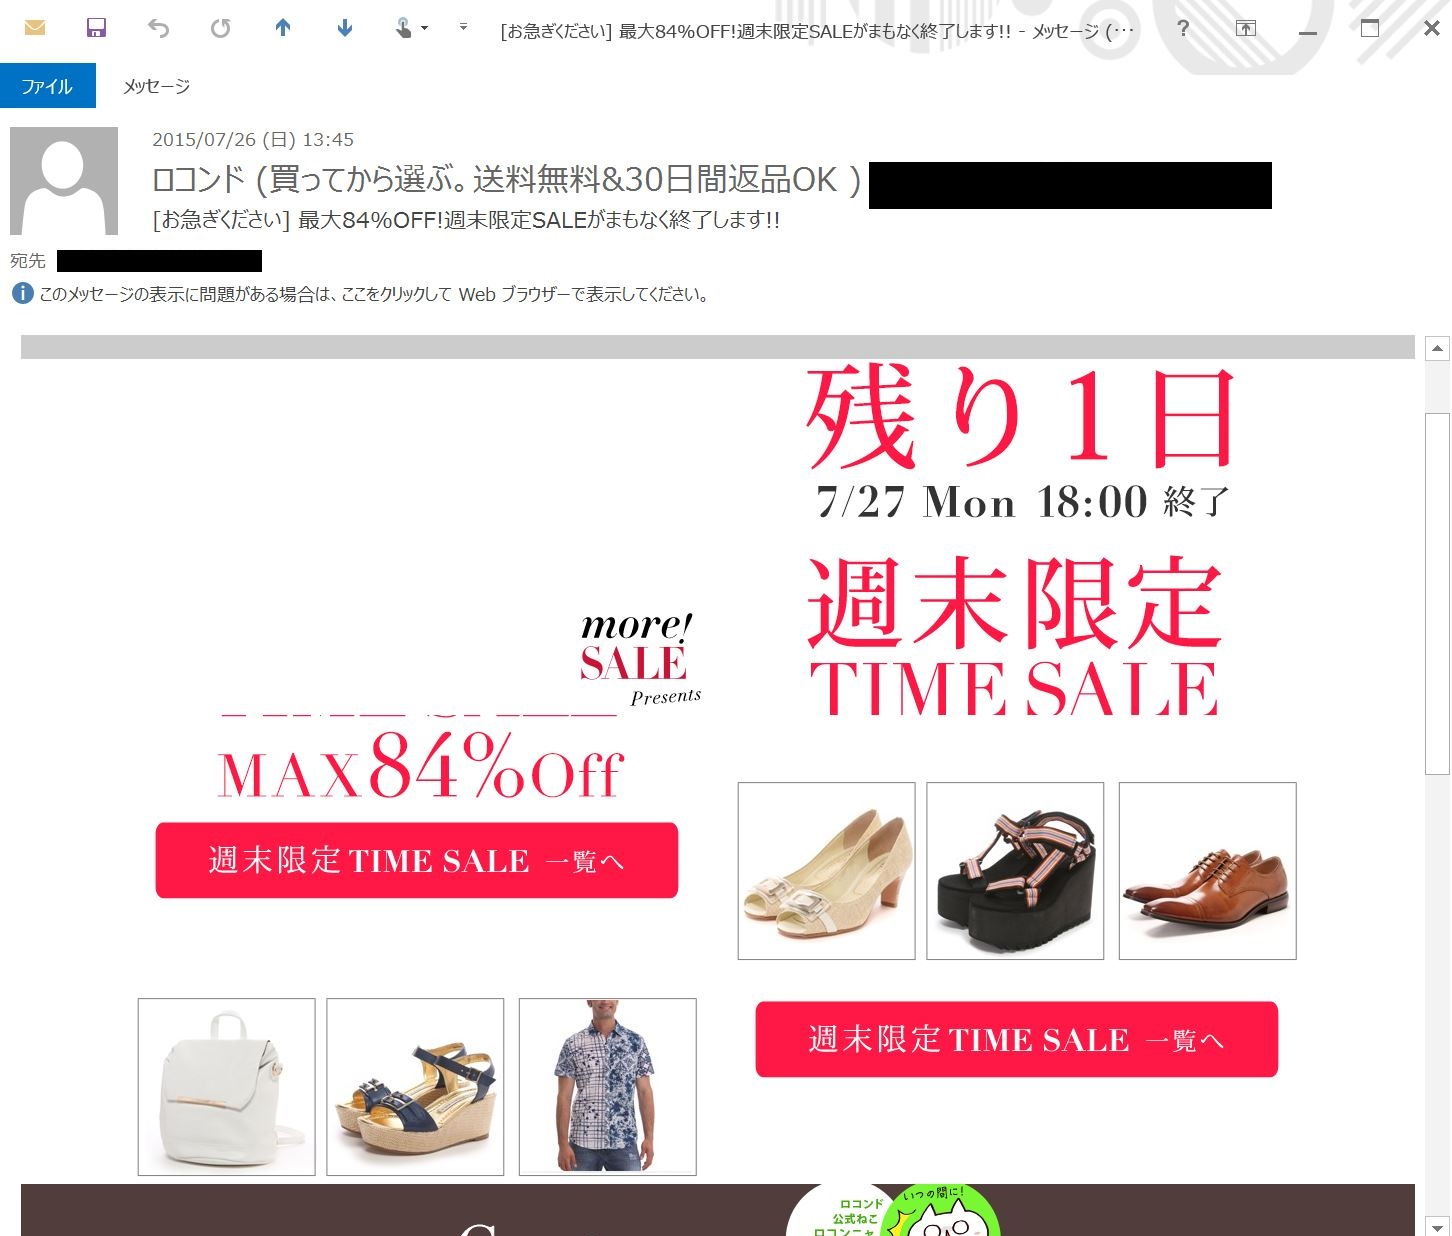 mailsample